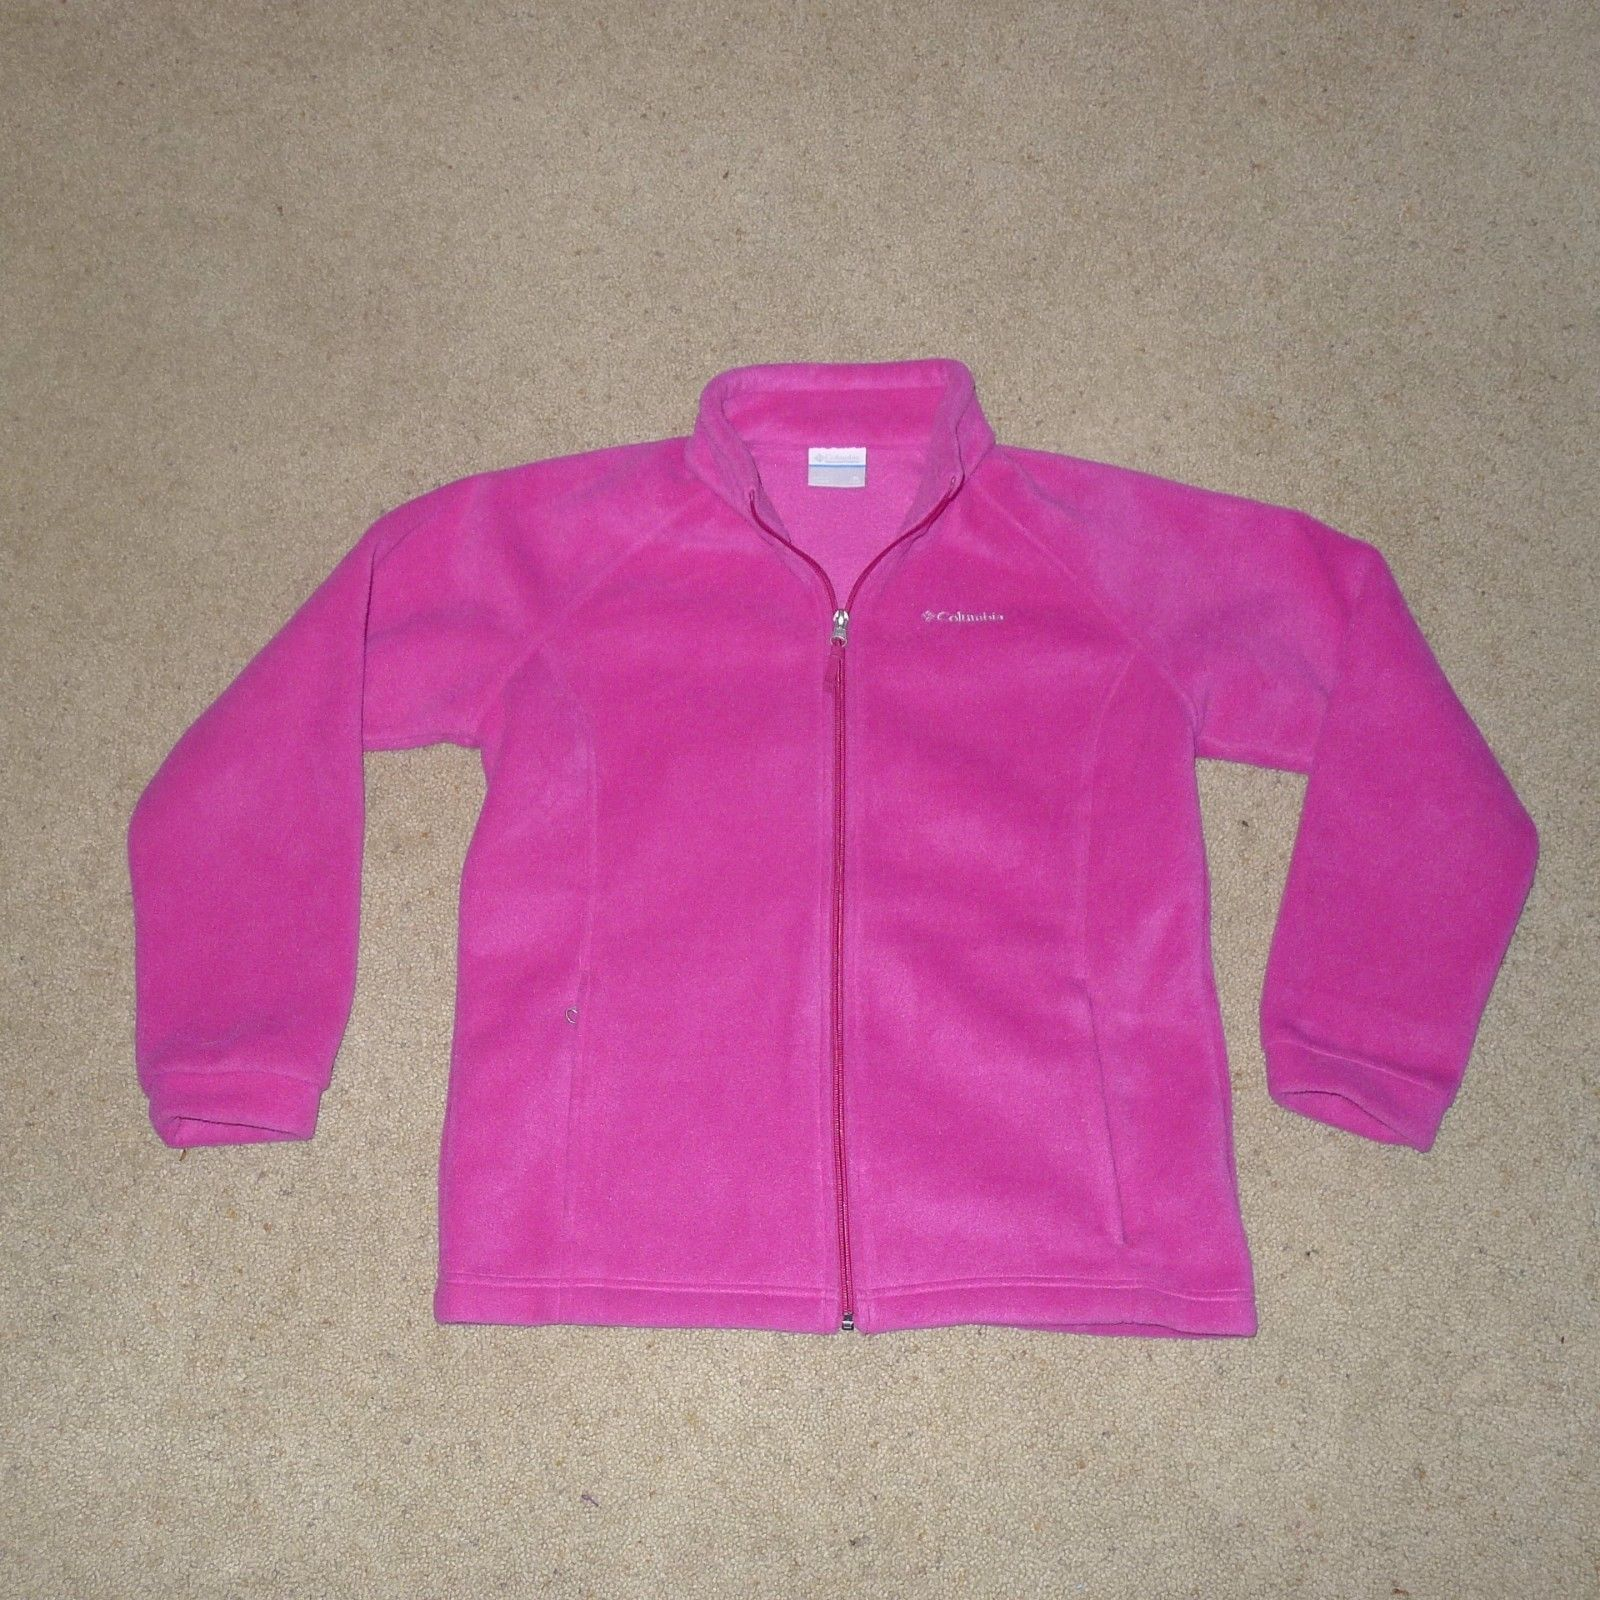 Columbia, Fleece Full Zip Up Jacket, Pink, Youth XL (18-20)